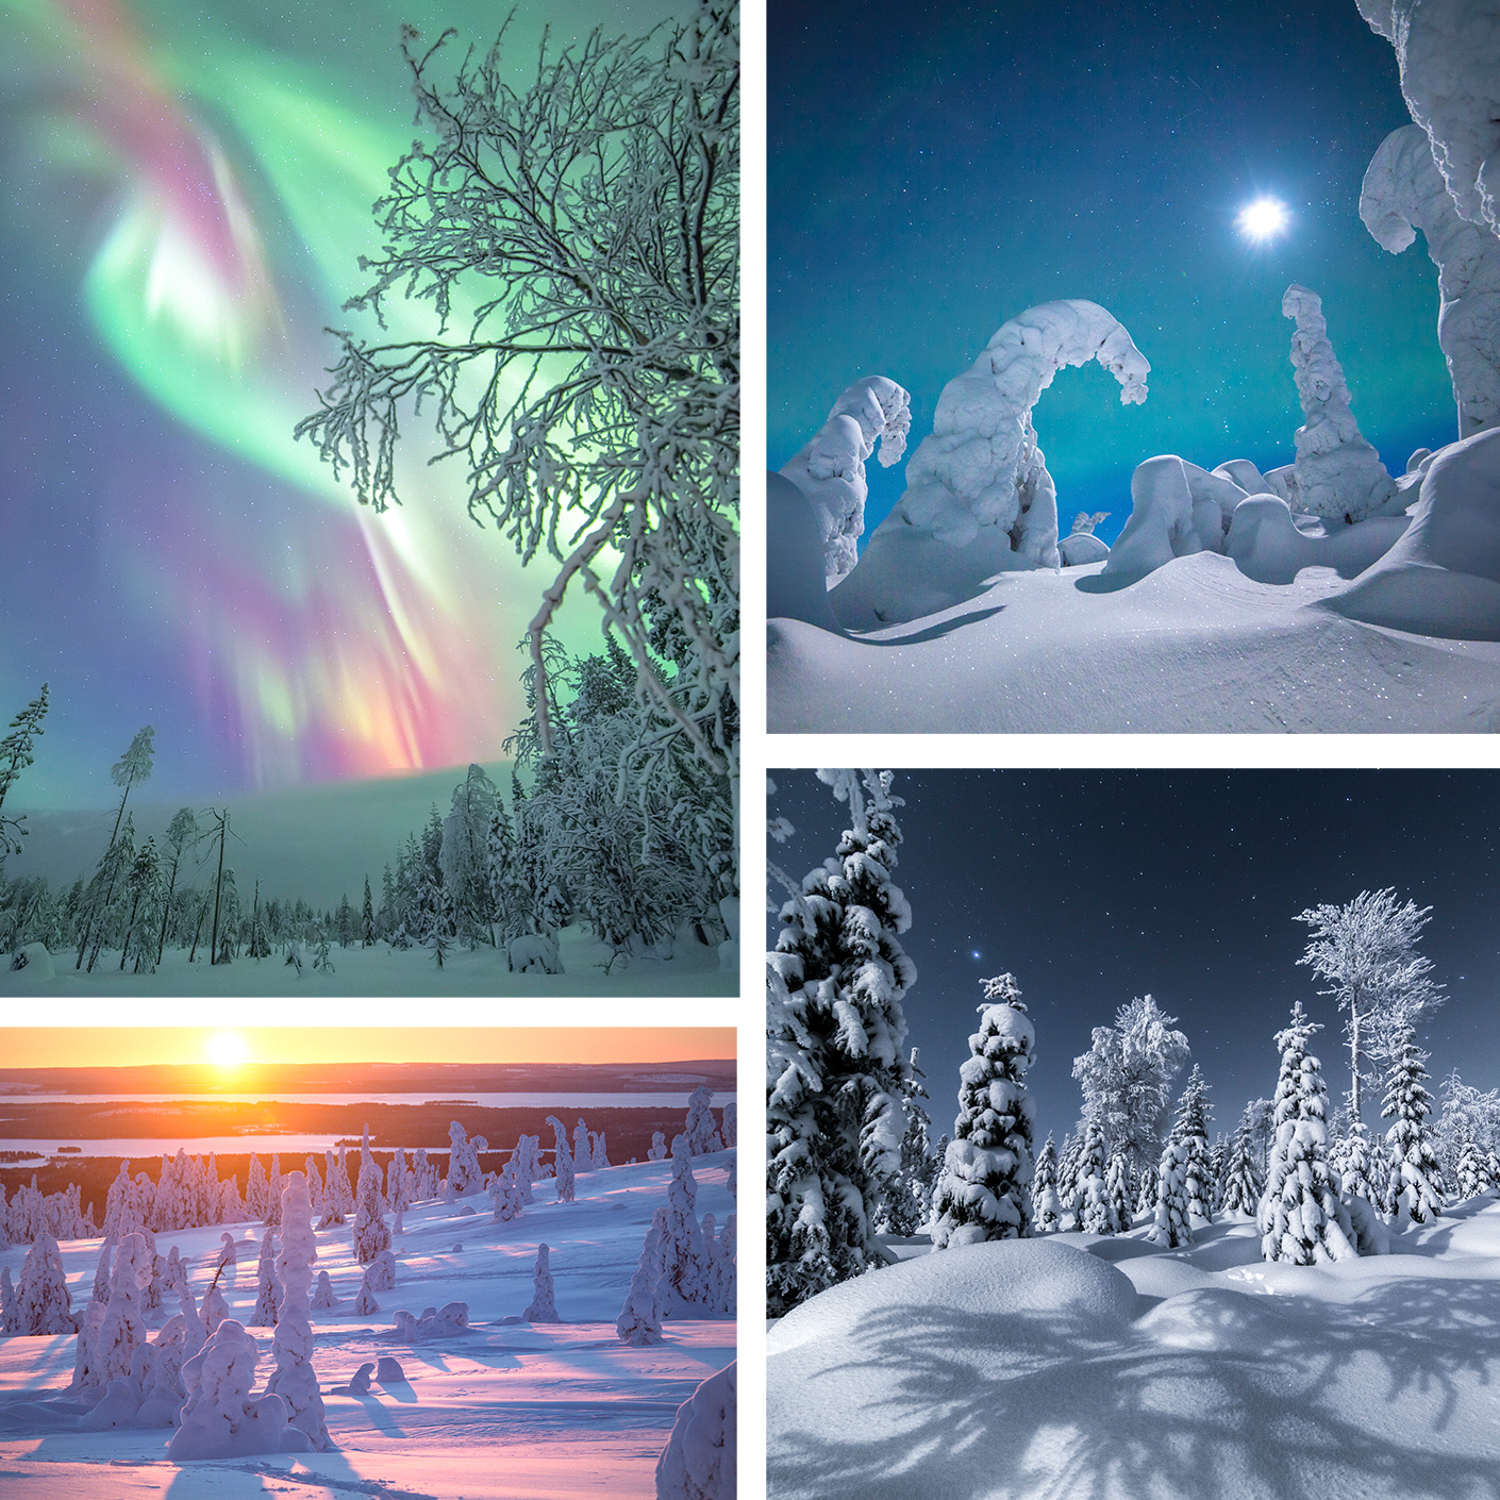 LAPLAND PHOTO WORKSHOP - WINTER WONDERLAND - Jan 13th-19th 2020Photography workshops in Lapland offers untouched winter landscapes to discover!